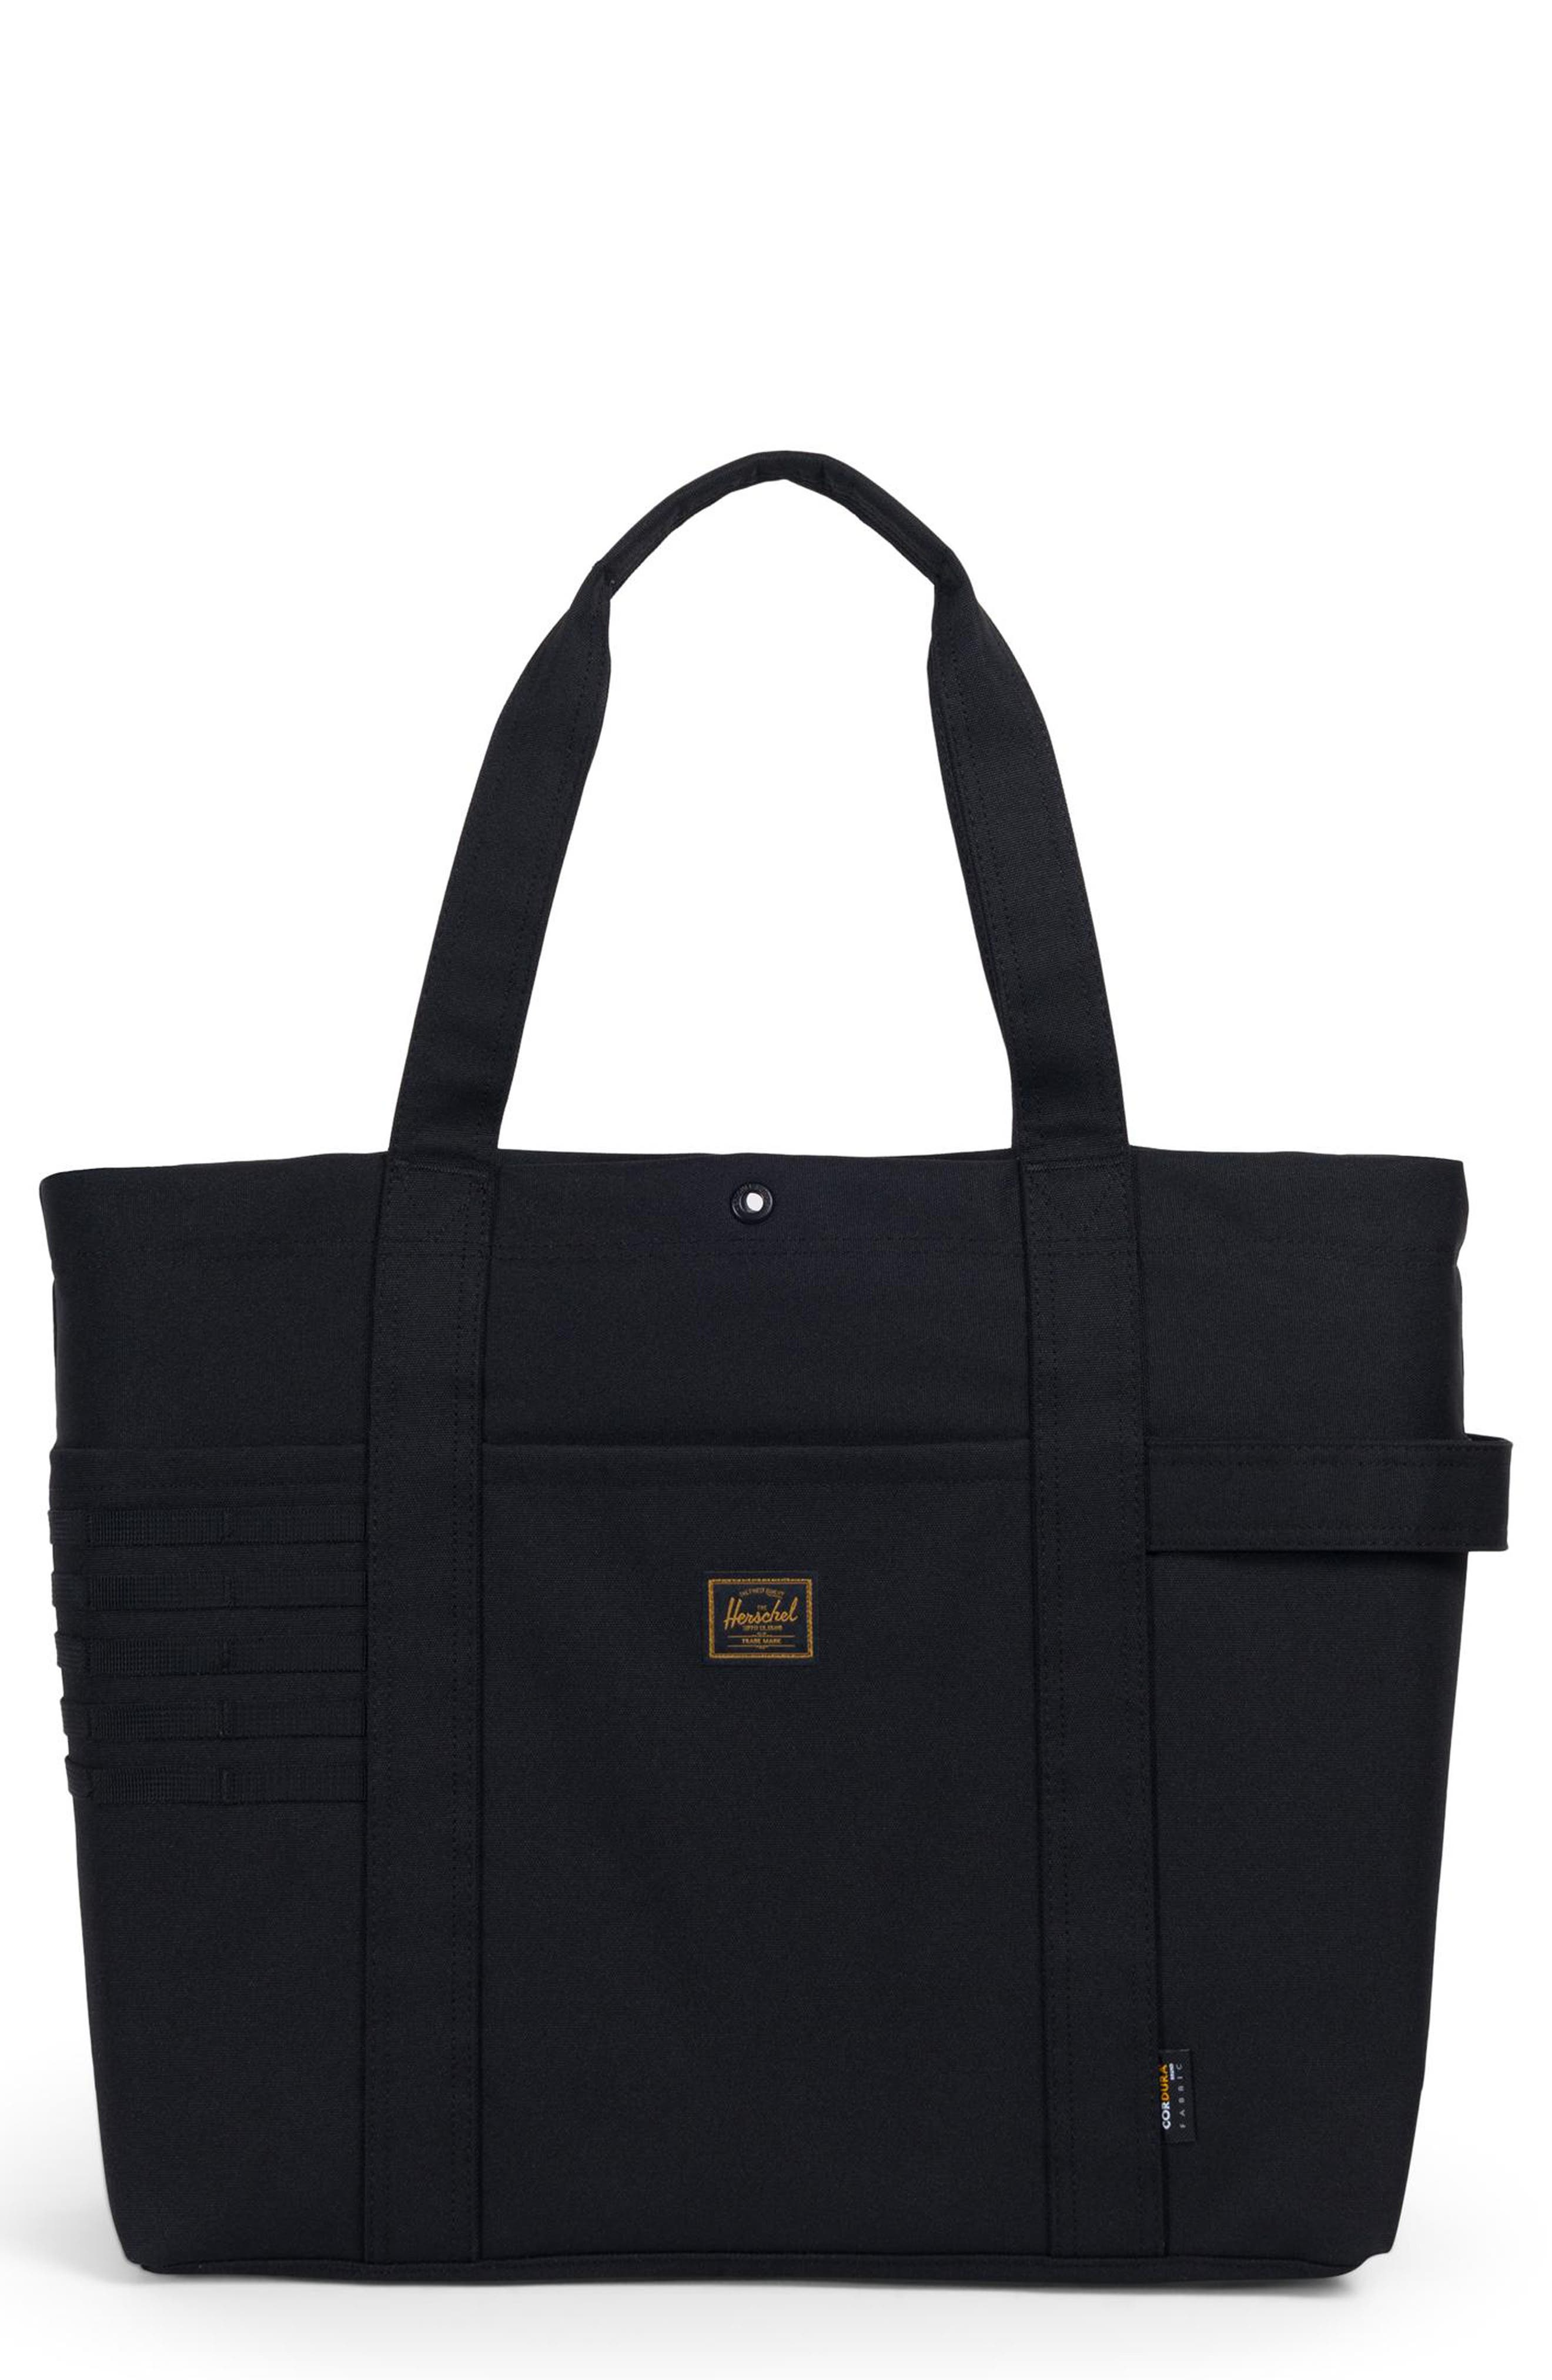 HERSCHEL SUPPLY CO.,                             Terrace Tote,                             Main thumbnail 1, color,                             001